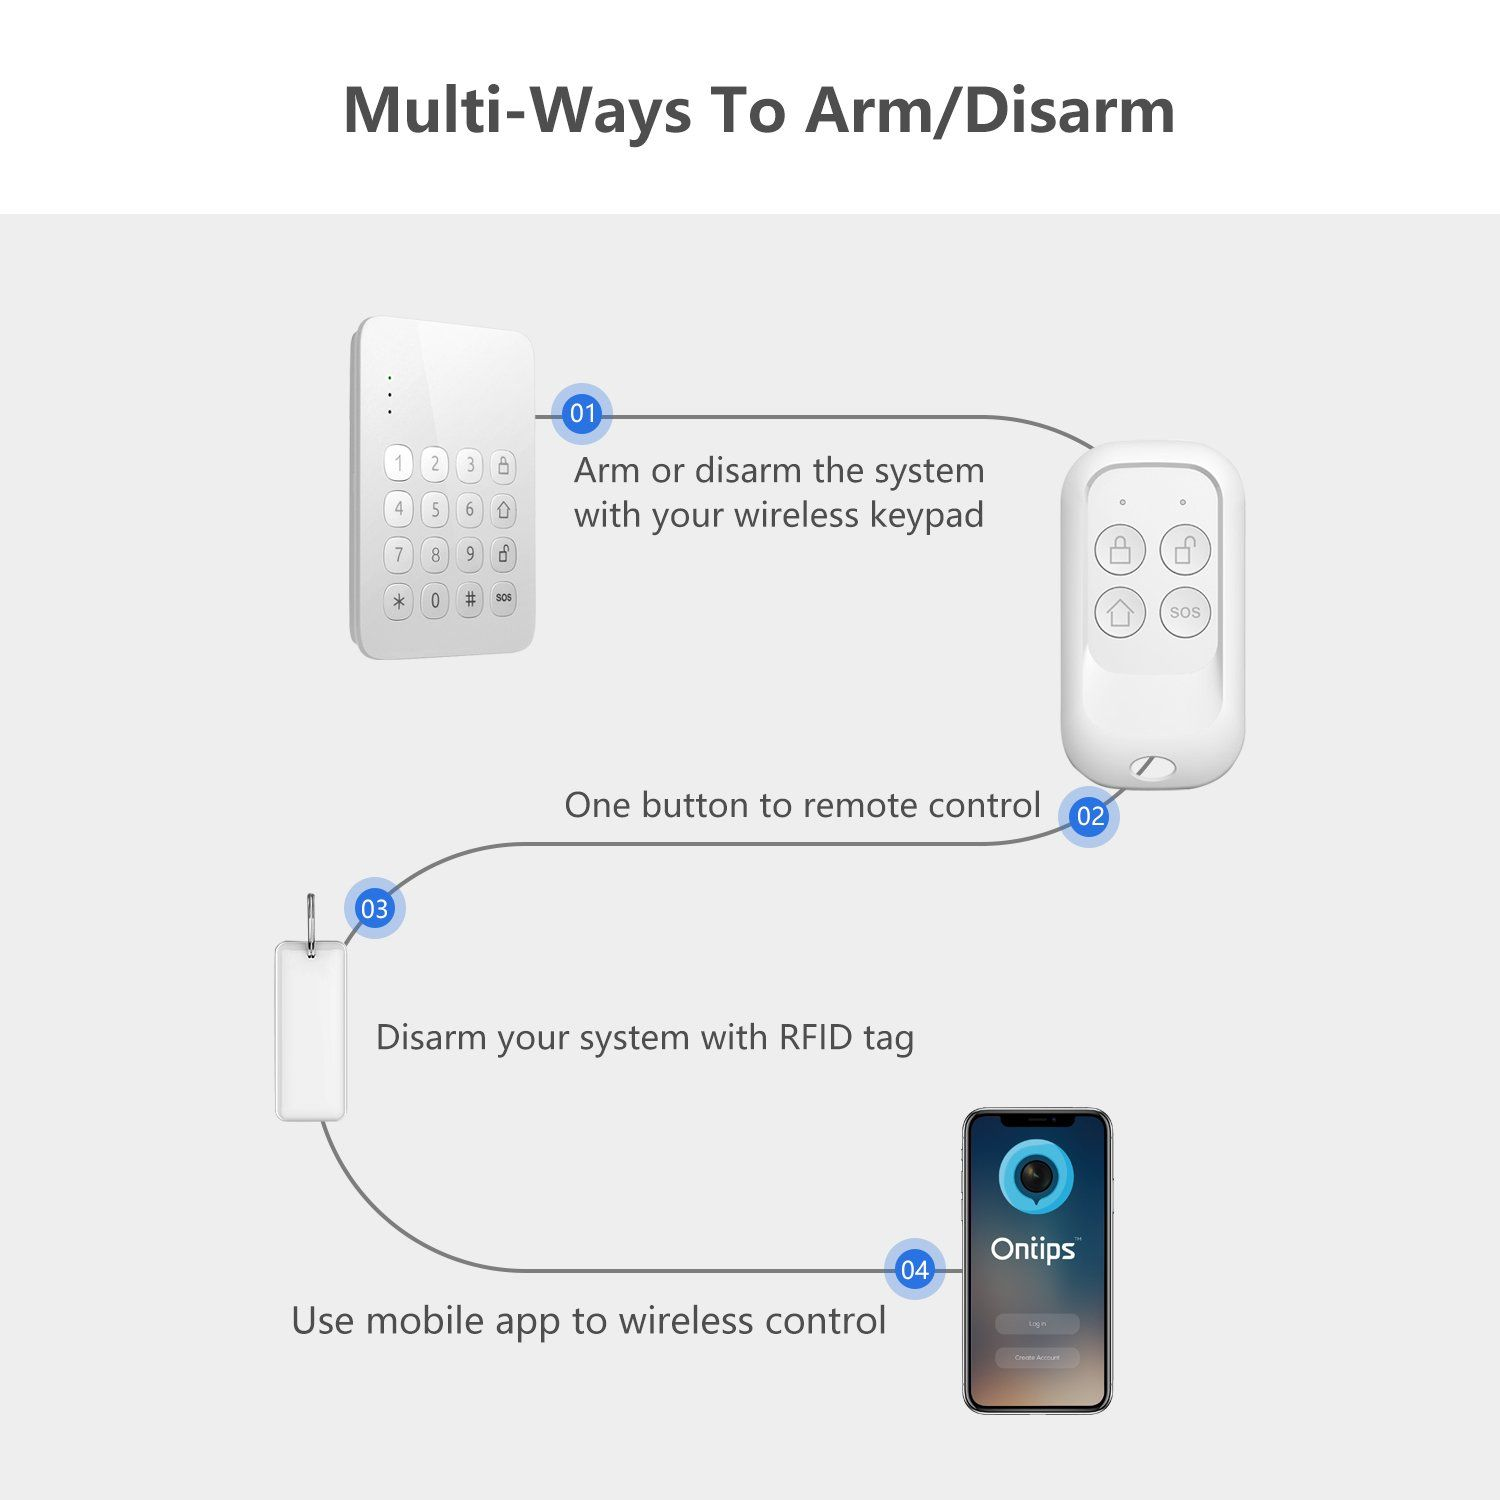 Home Alarm Security Systemnextrend Smart Wifi Alarm System Diy Kit With Wireless Keypadeasy App With No Monthly Fee You Ca Alarm System Home Alarm Diy Kits